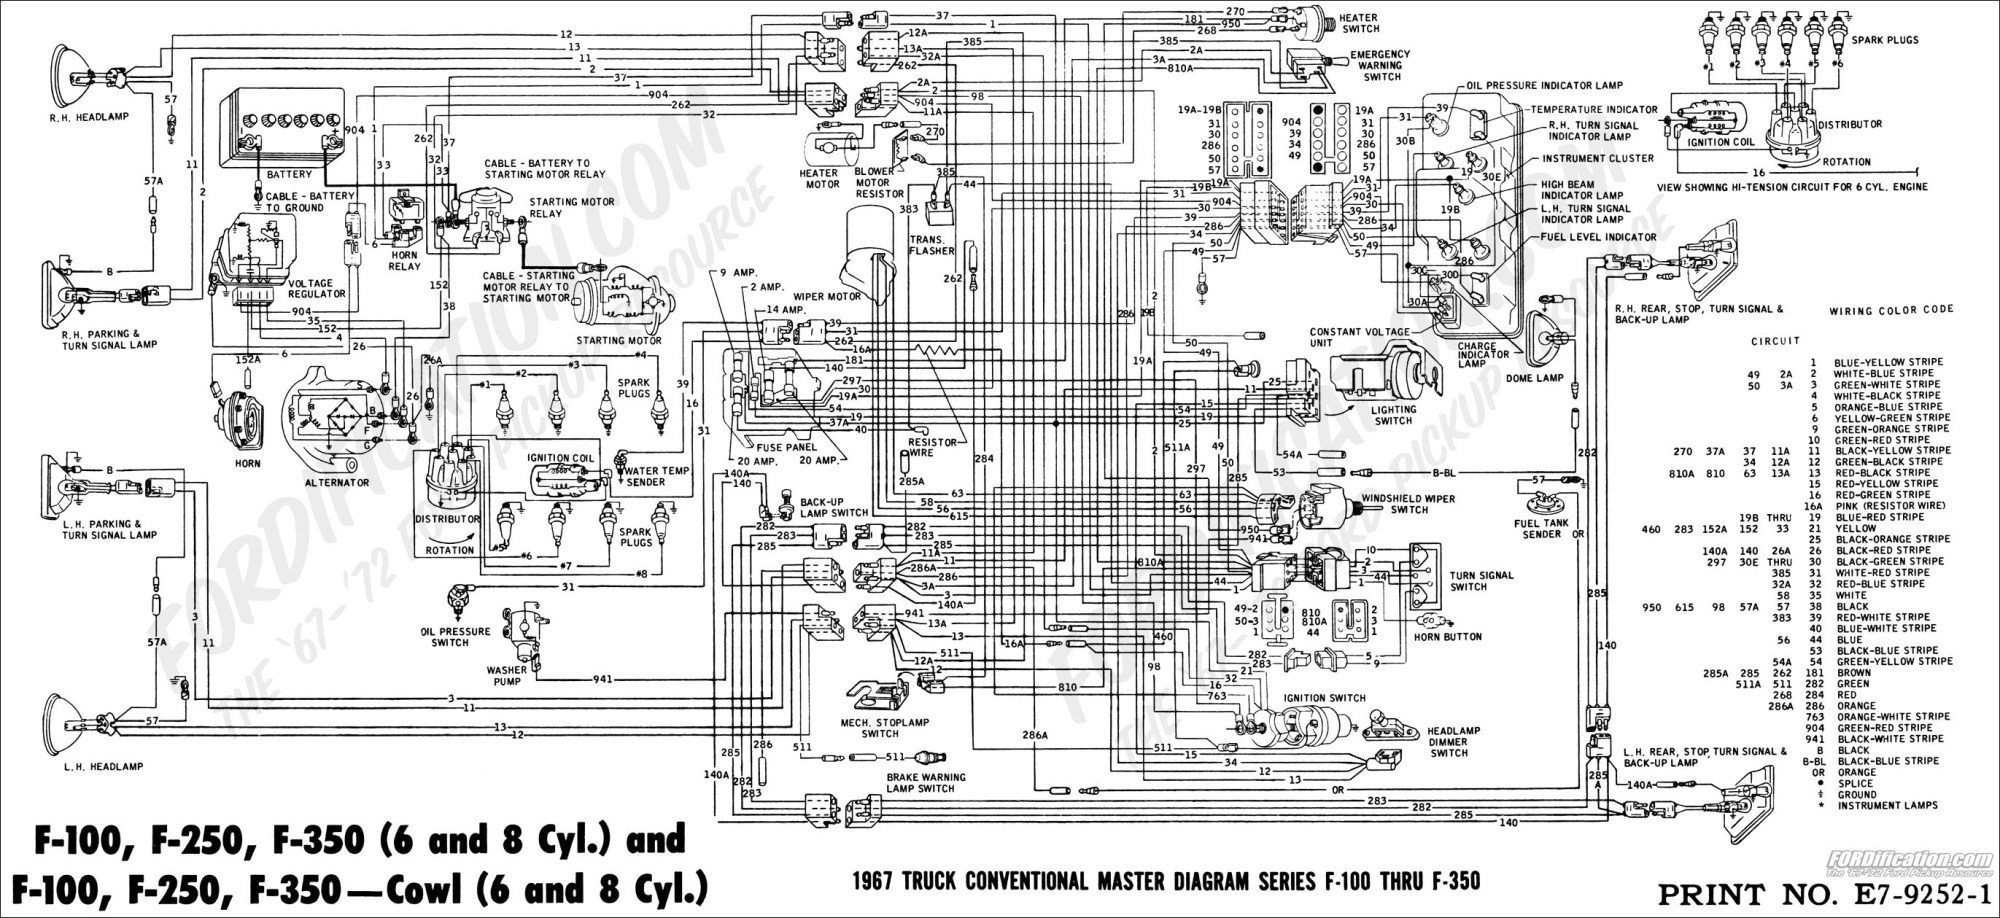 hight resolution of 1992 e350 wiring diagram wiring diagrams ford f 150 radio wiring diagram 1990 e350 wiring